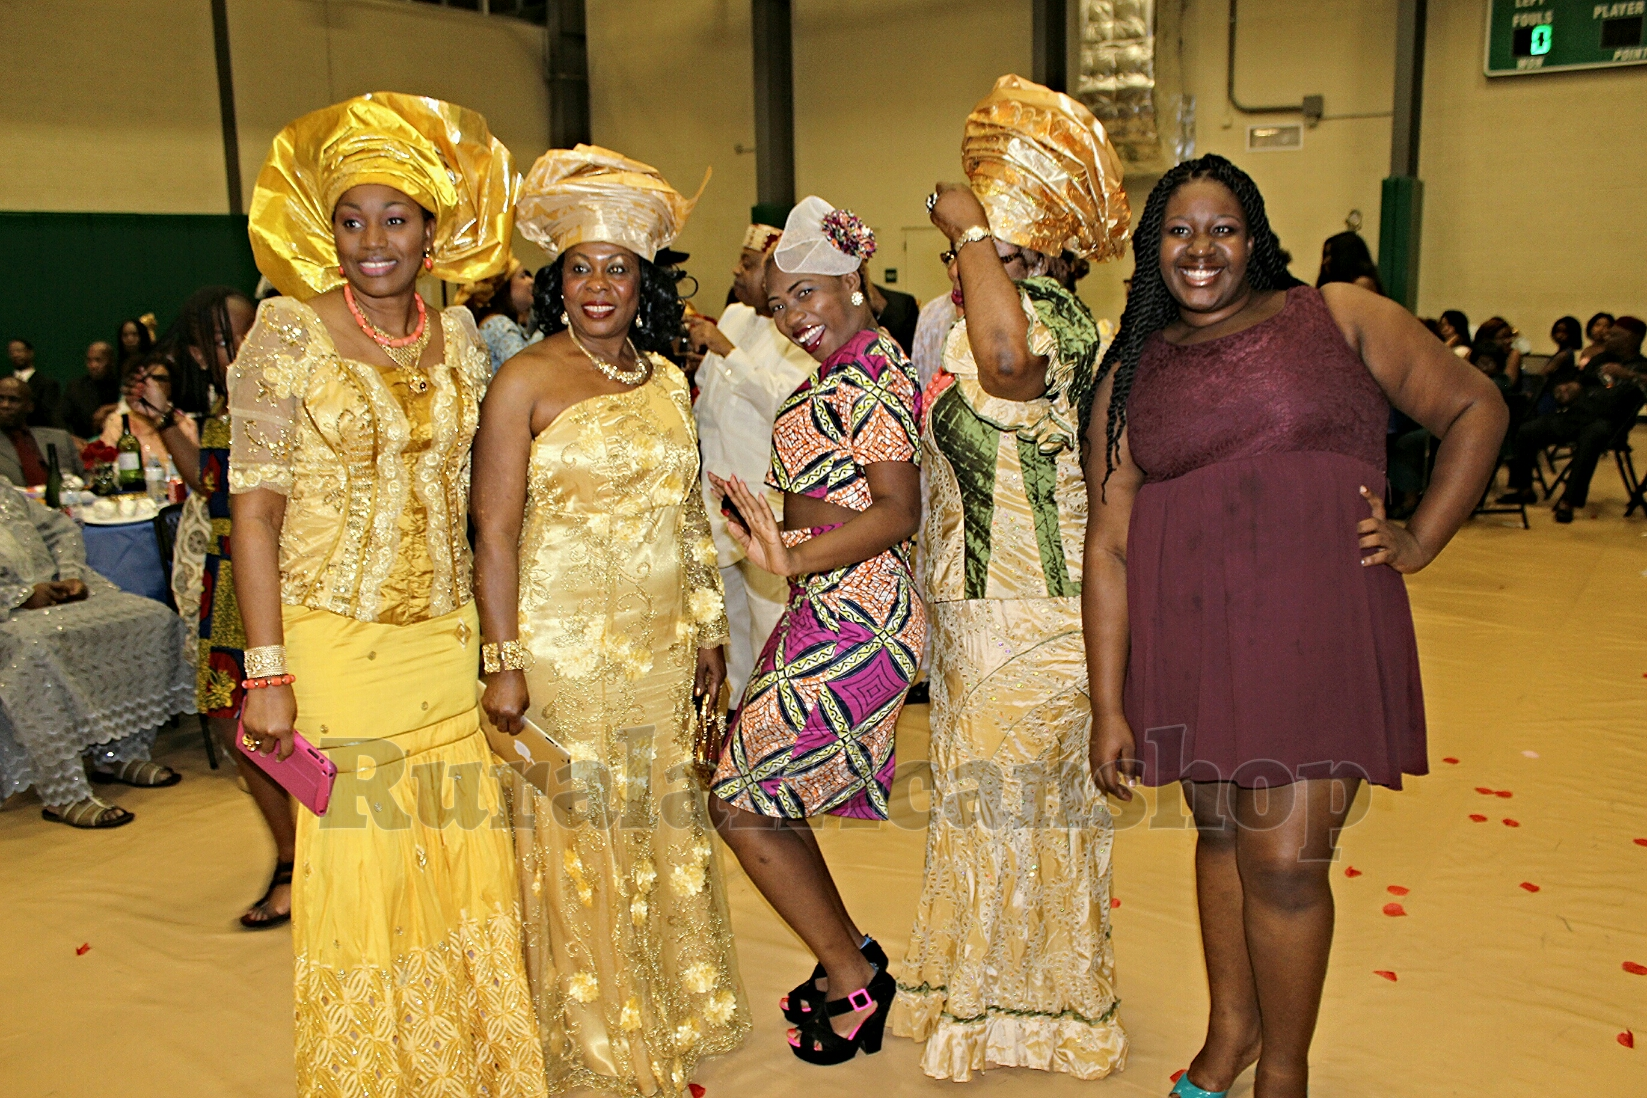 A Traditional Wedding Or An African Fashion Show